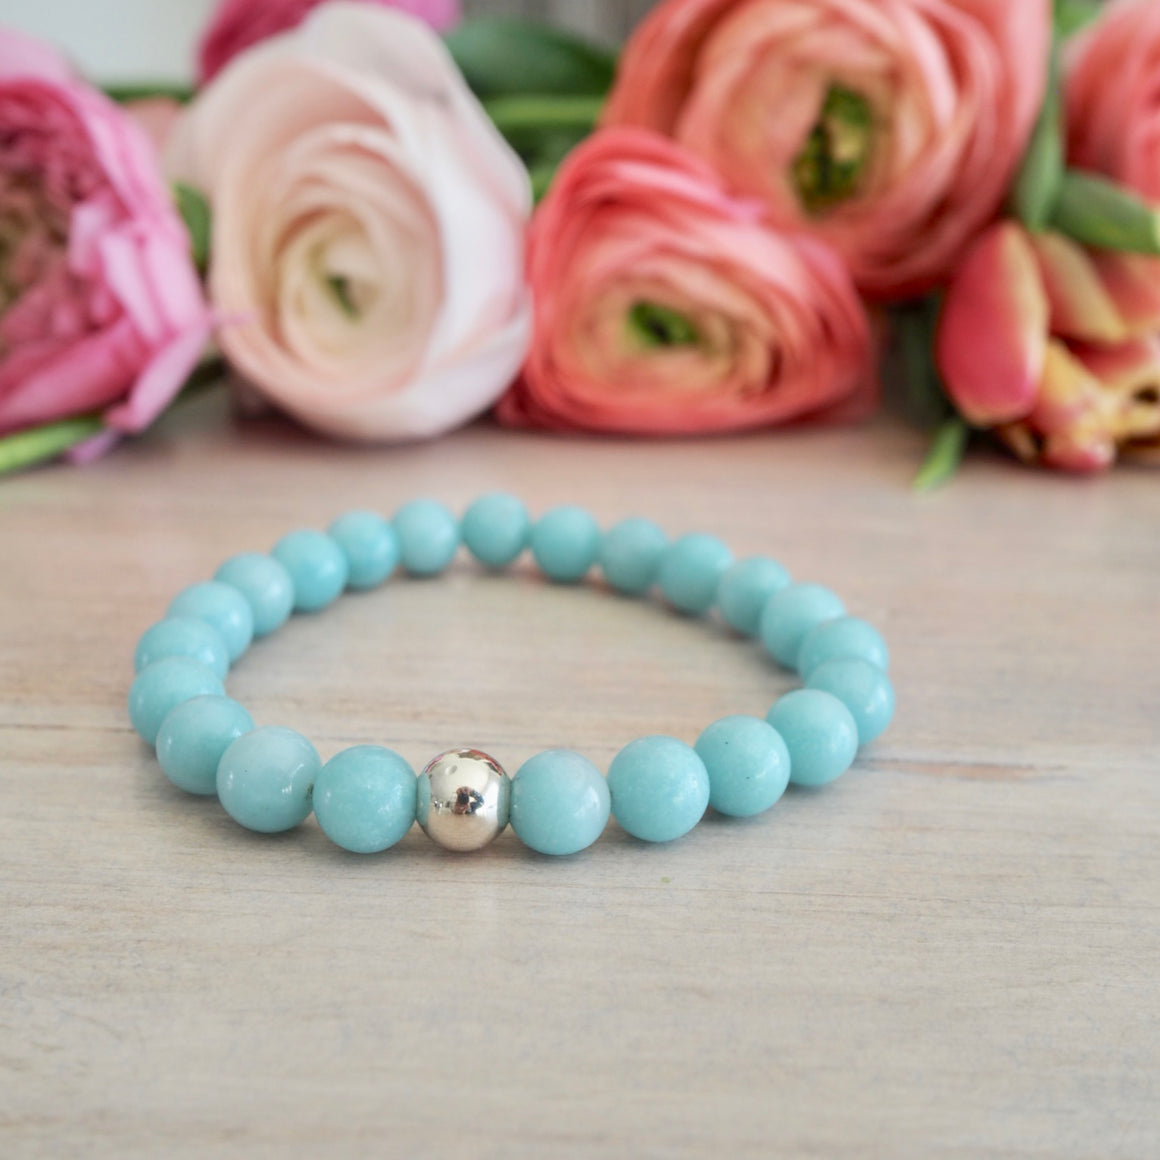 Amazonite Stretch Bracelet by Nancy Wallis Designs